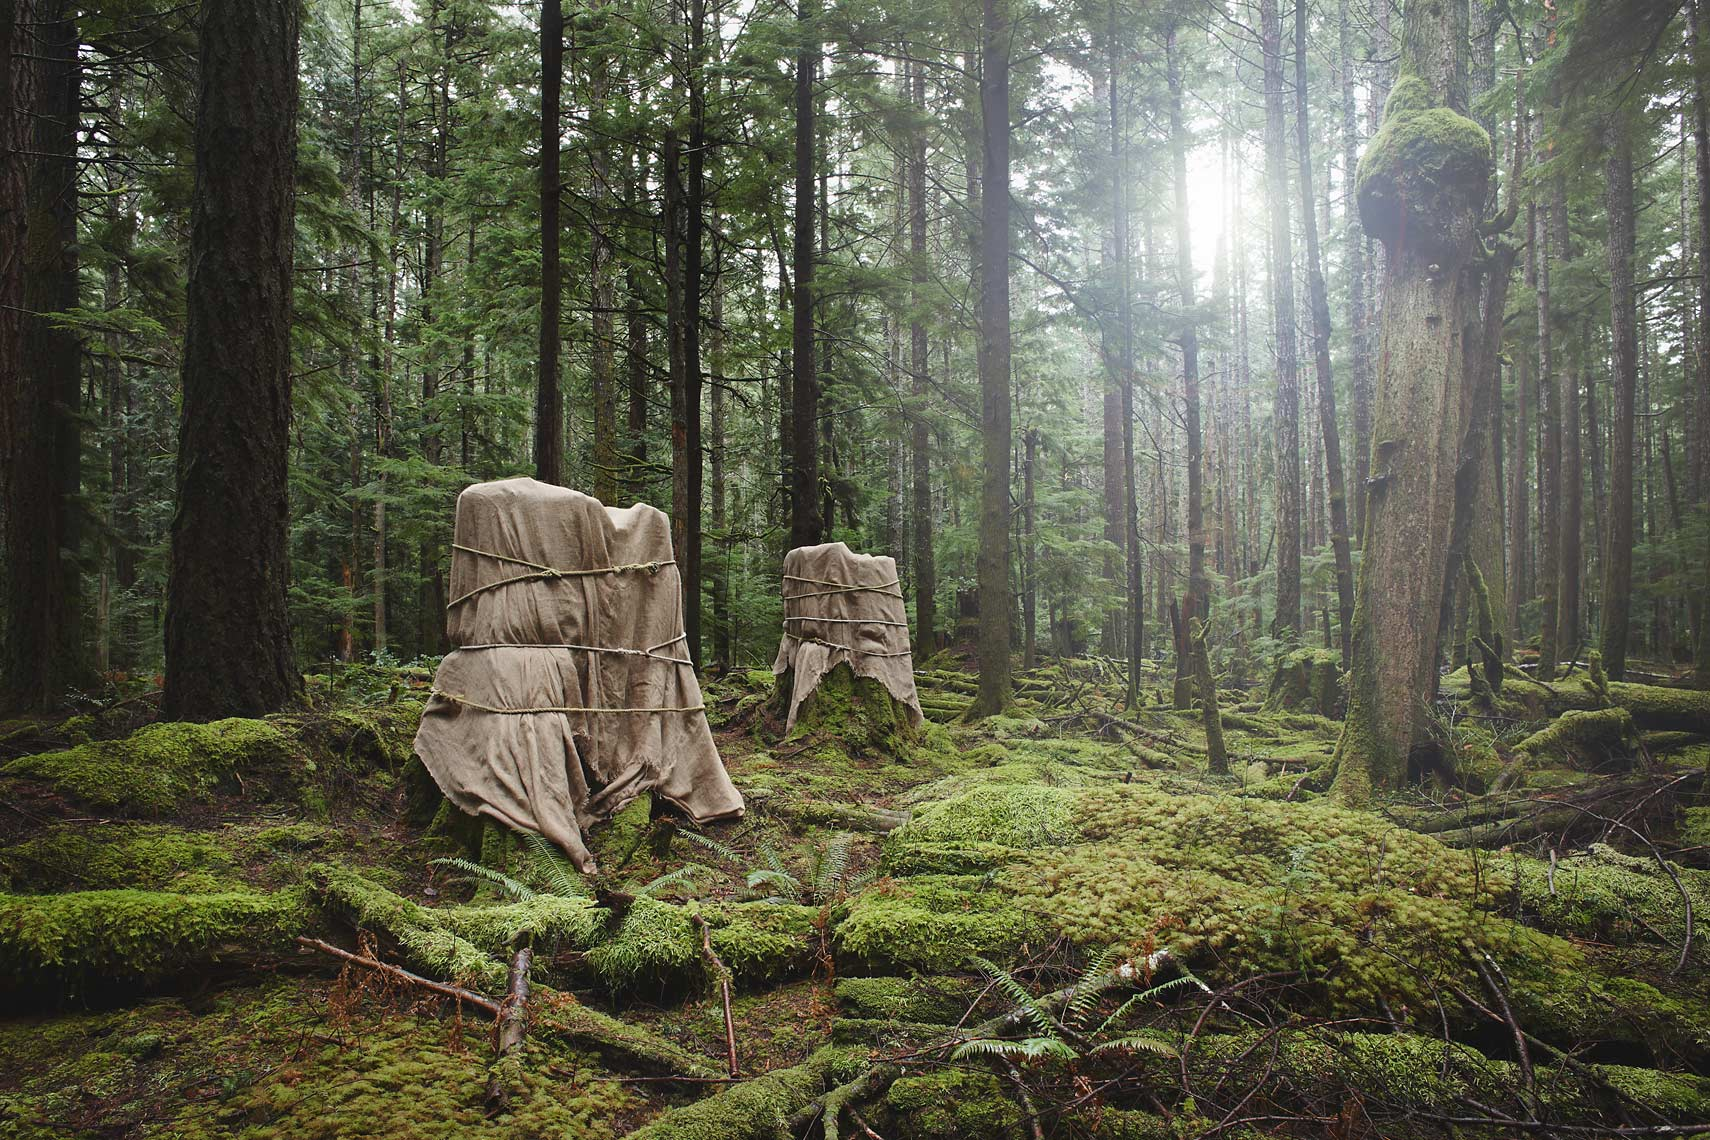 Wrapped old growth stumps from a fine art photograph  series about deforestation, environment and climate change